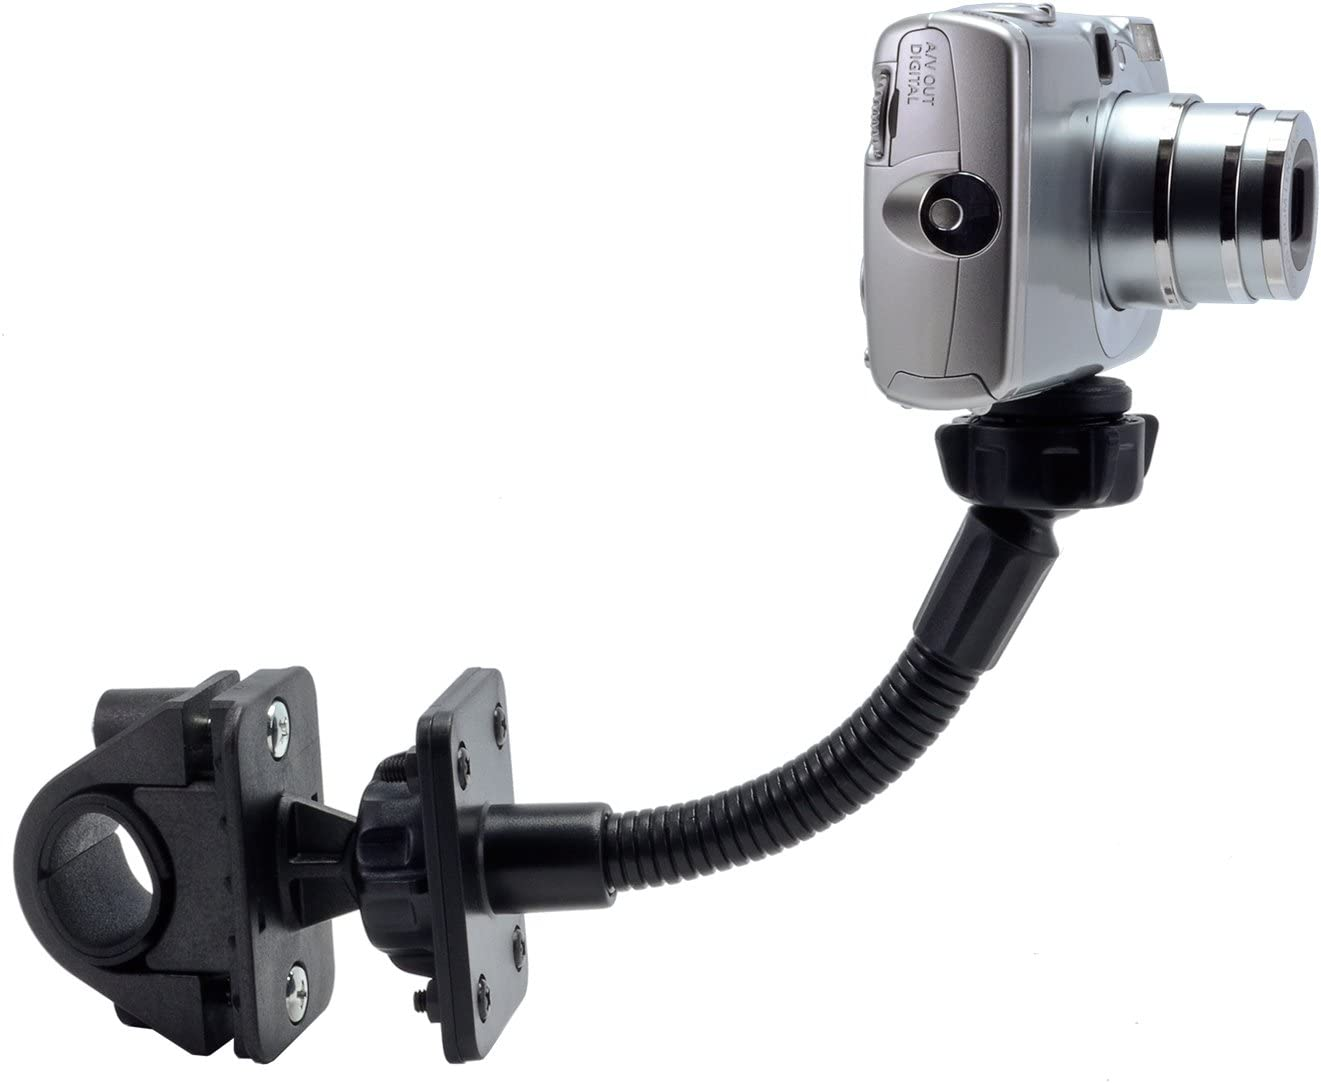 ARKON CMP205 Motorcycle and Bicycle Handle Bar Mount with 5 Inch flexible extension for Cameras with 1//4 20 screw thread